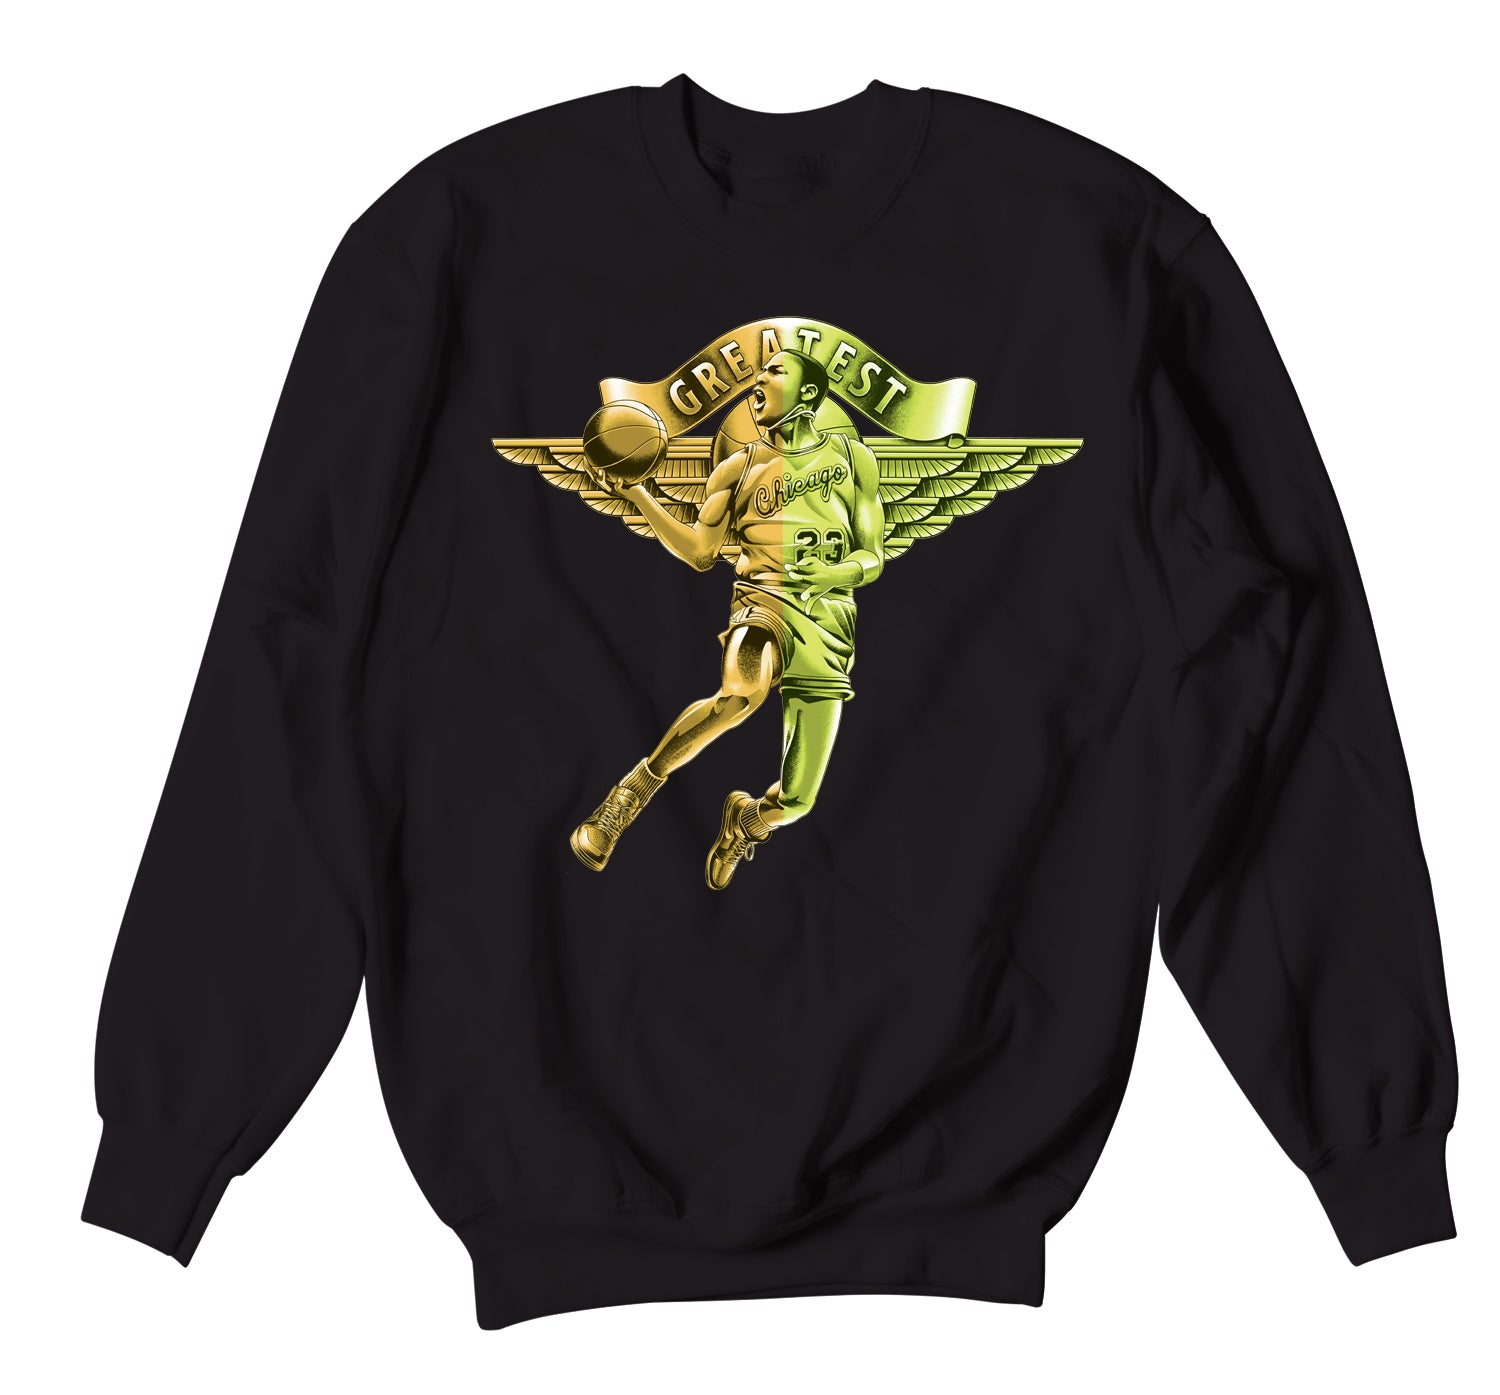 Jordan 1 volt gold sneaker has matching crew neck sweater collection